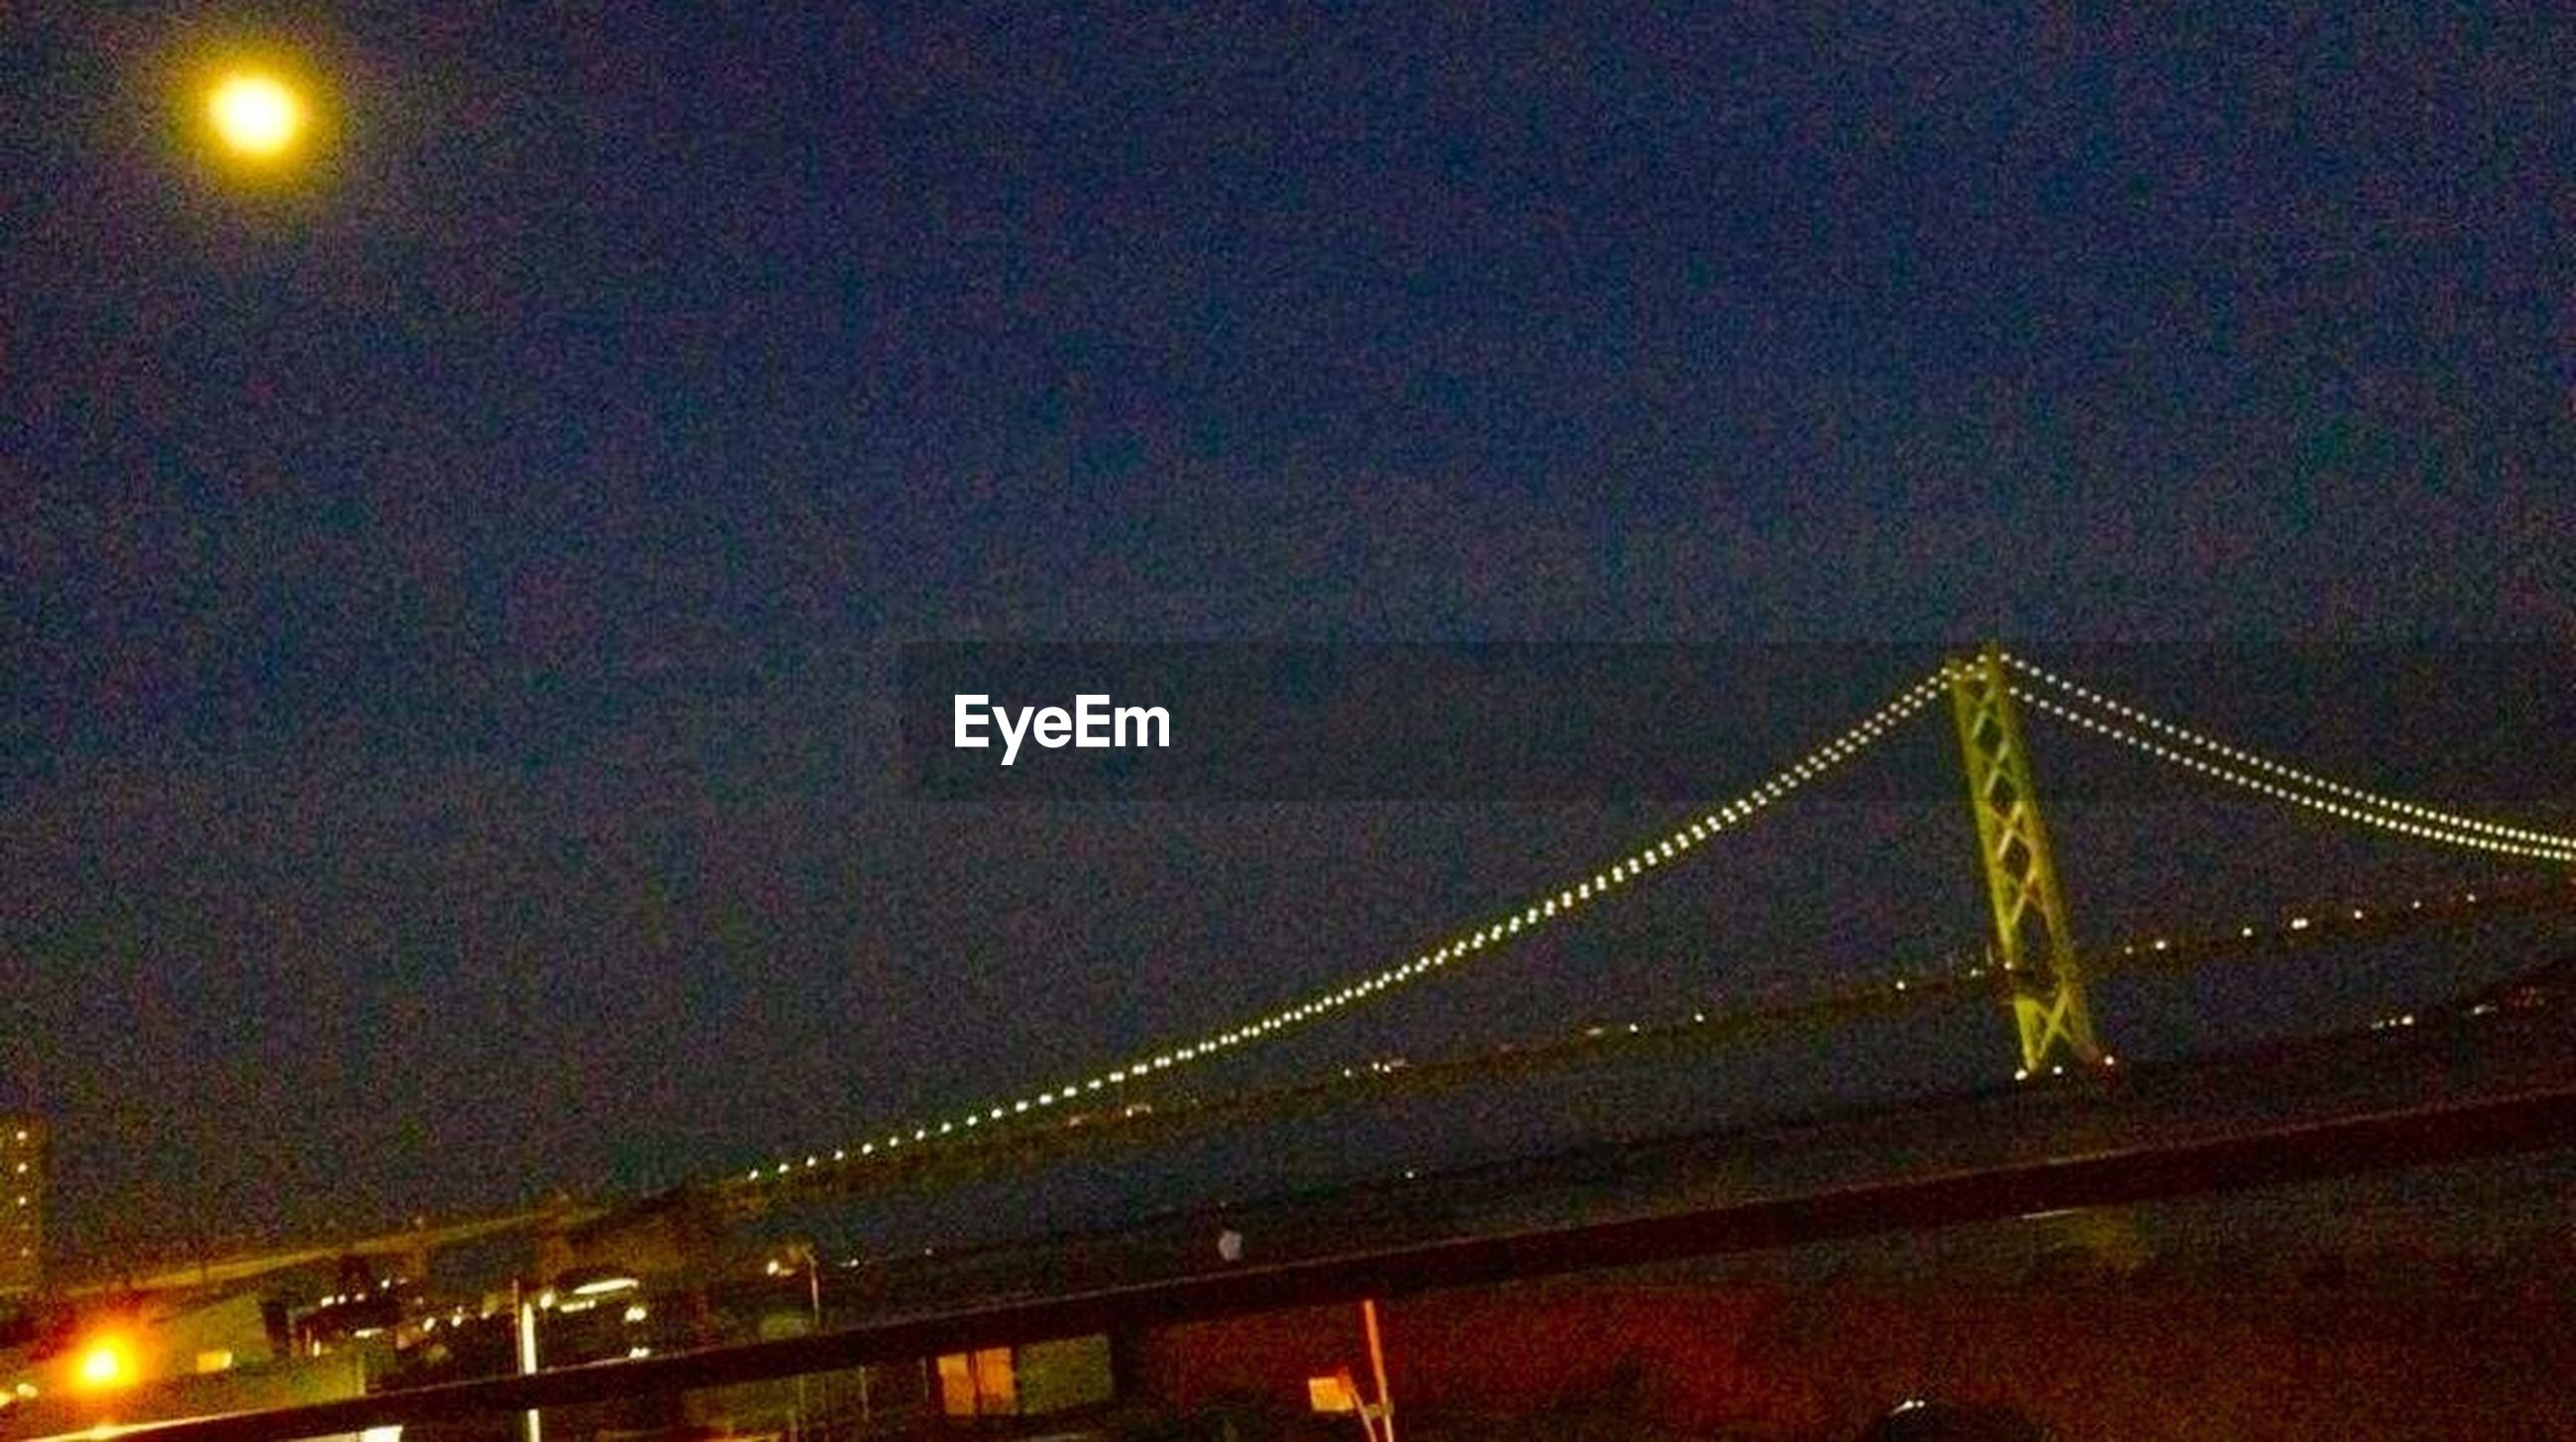 night, illuminated, architecture, built structure, low angle view, sky, moon, lighting equipment, connection, city, light - natural phenomenon, building exterior, light, bridge - man made structure, copy space, outdoors, dark, street light, glowing, no people